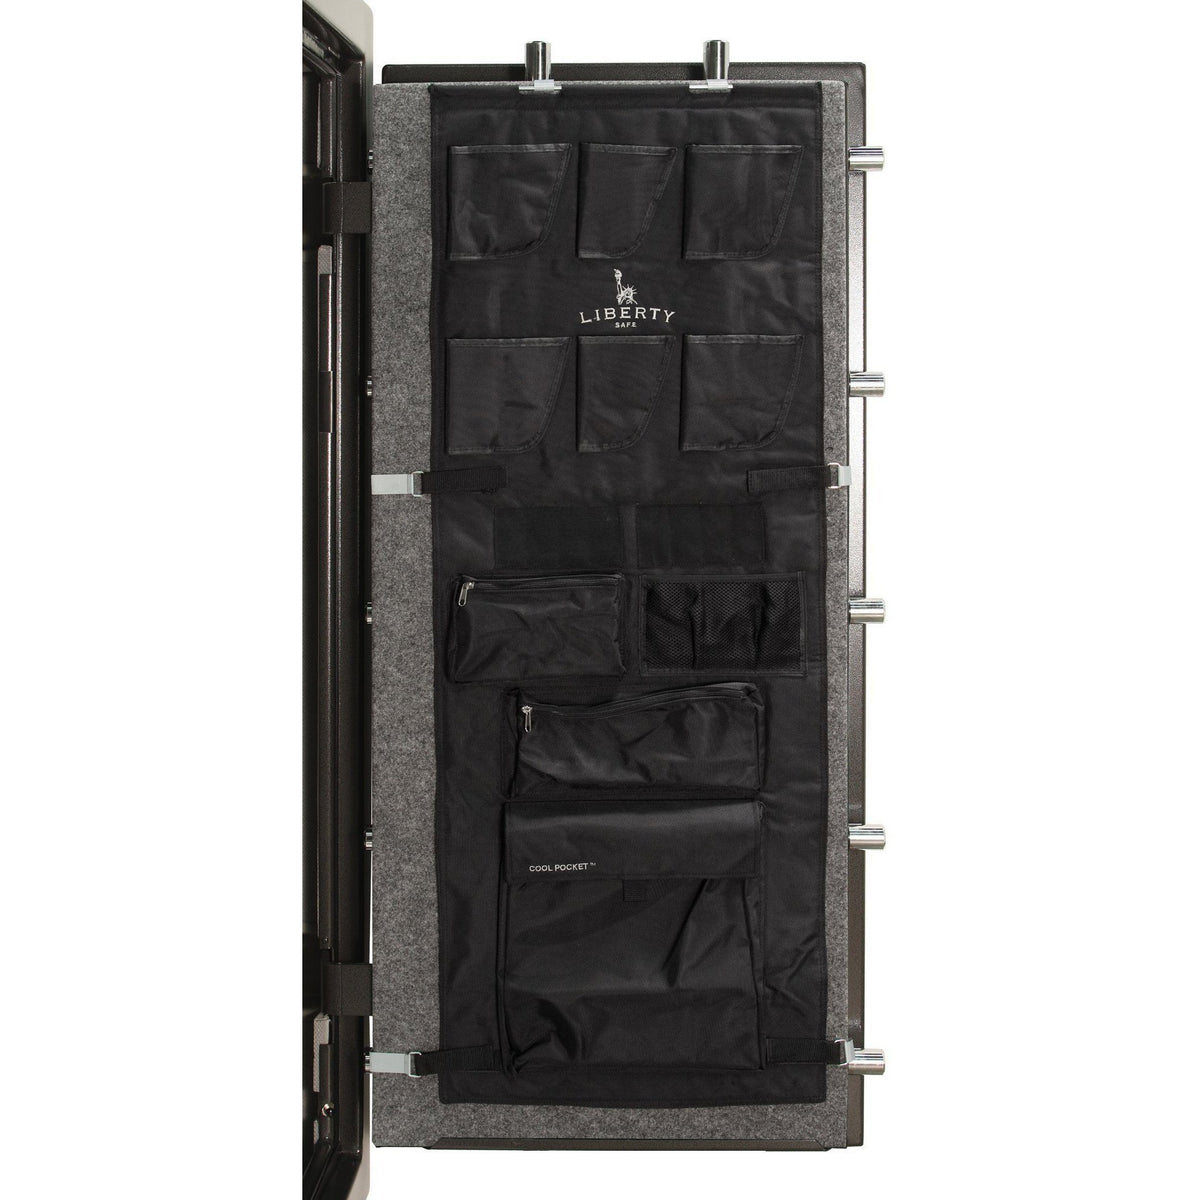 Liberty Safe-accessory-storage-door-panel-20-23-25-size-safes